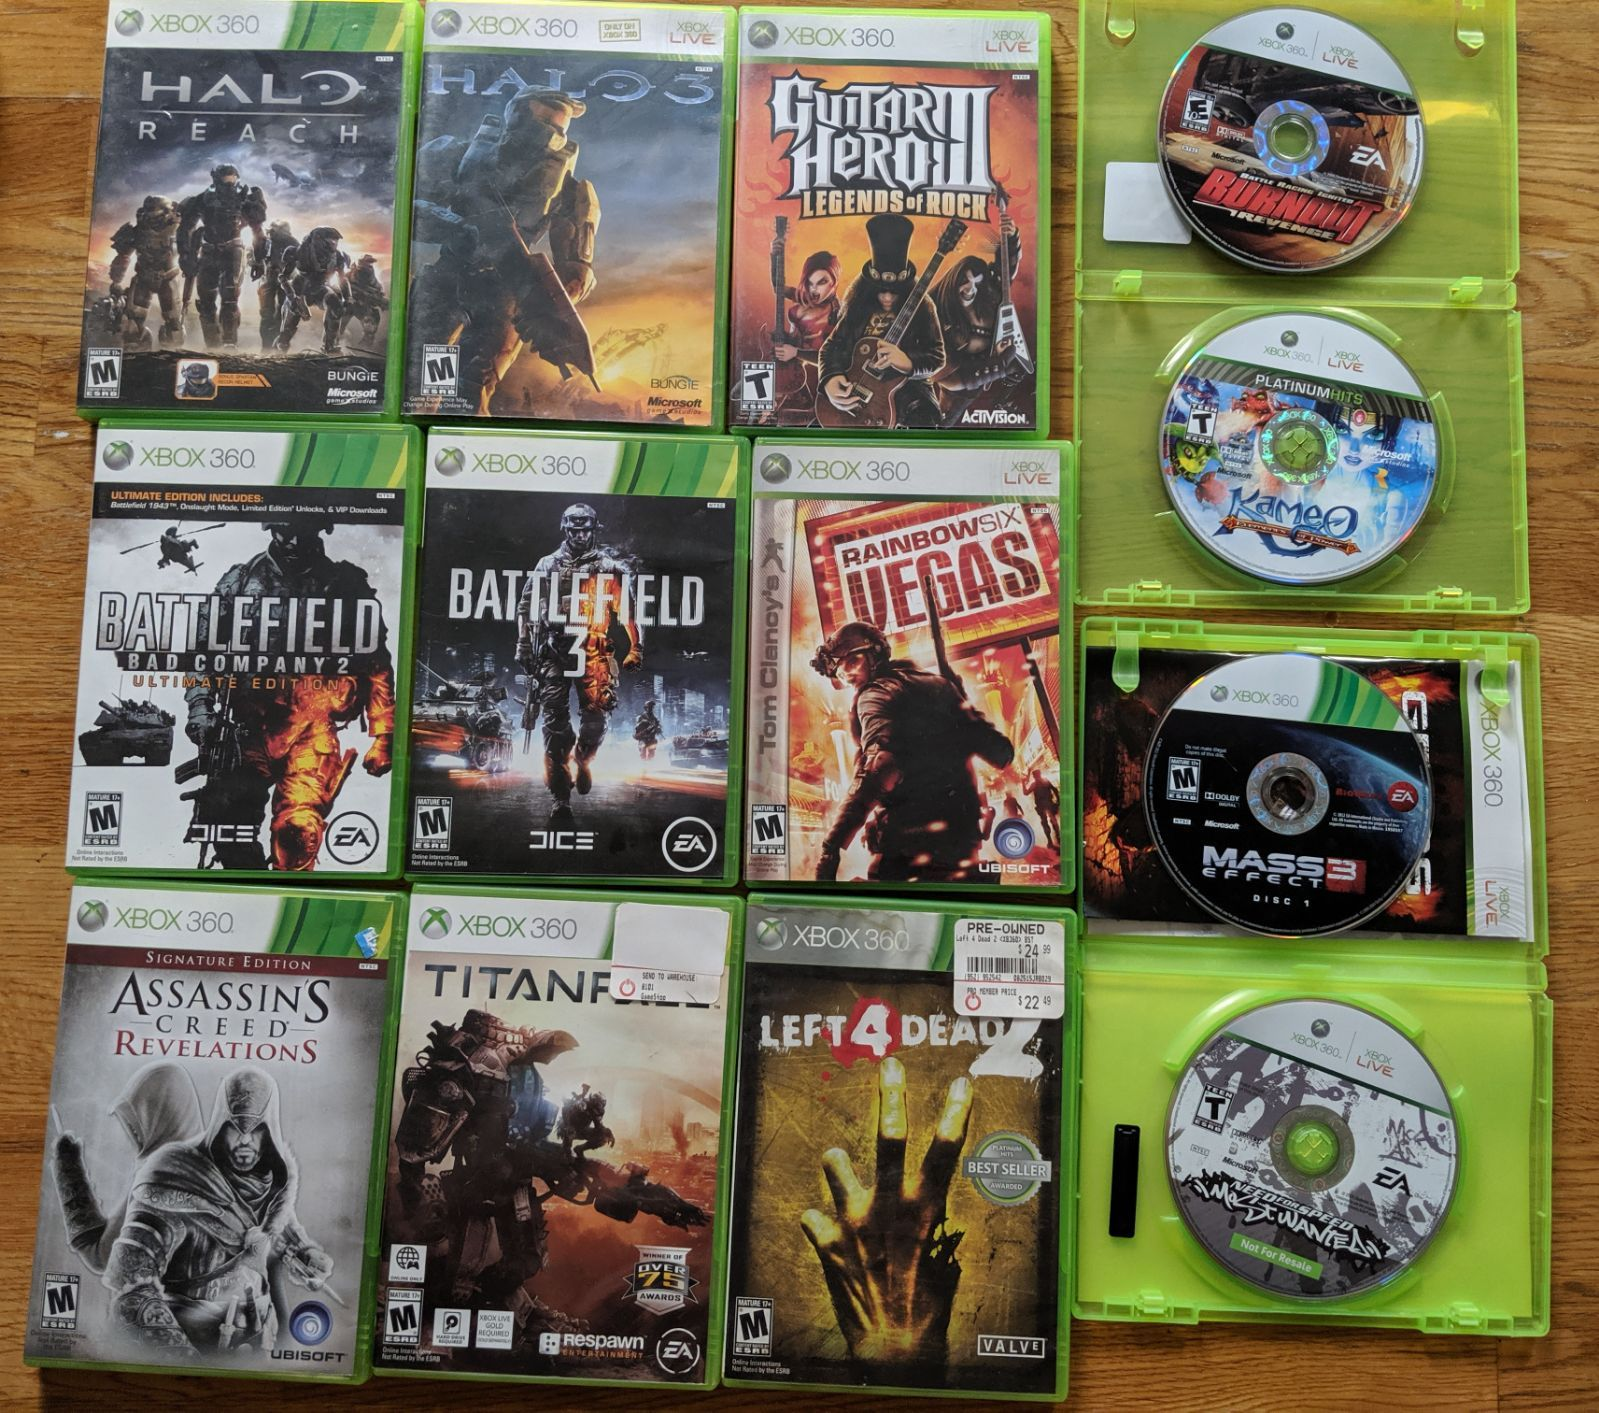 Bundle Of Xbox 360 Games Includes Halo Reach Halo 3 Assassin S